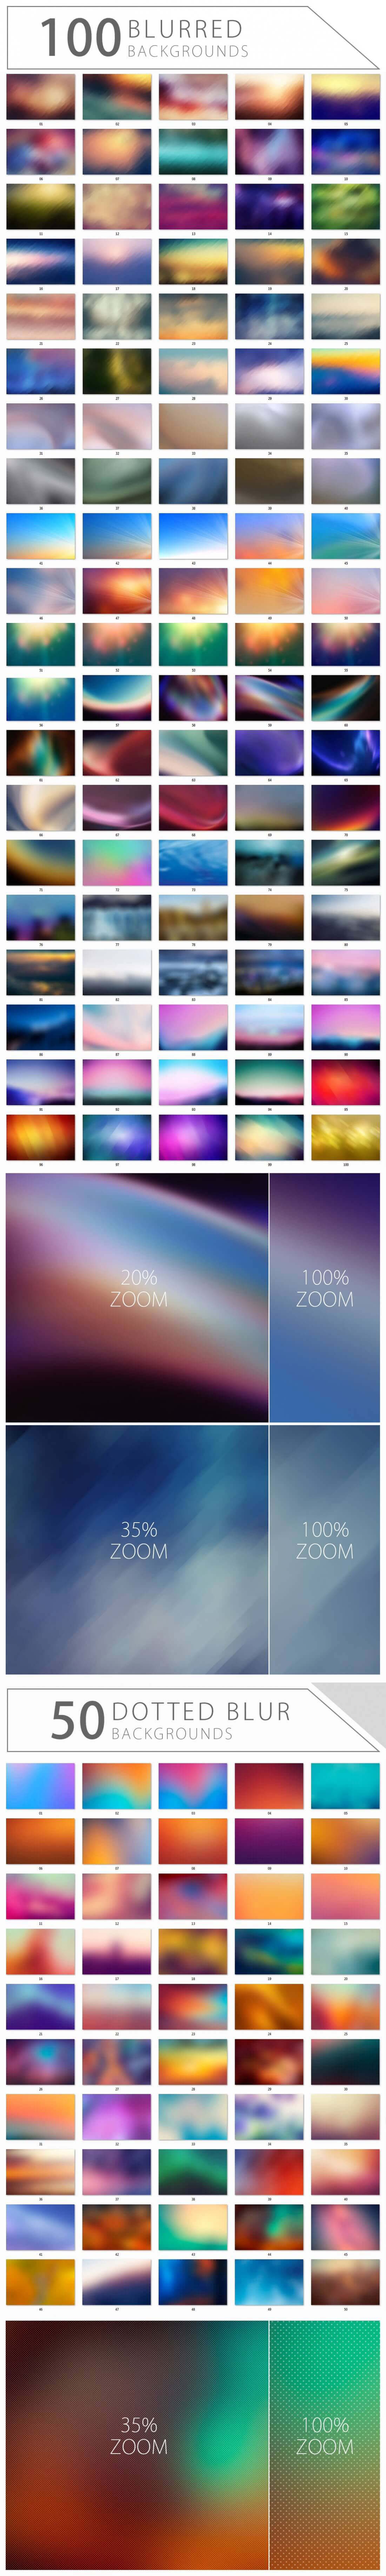 150-Blurred-Dot-Backgrounds-prev-2A